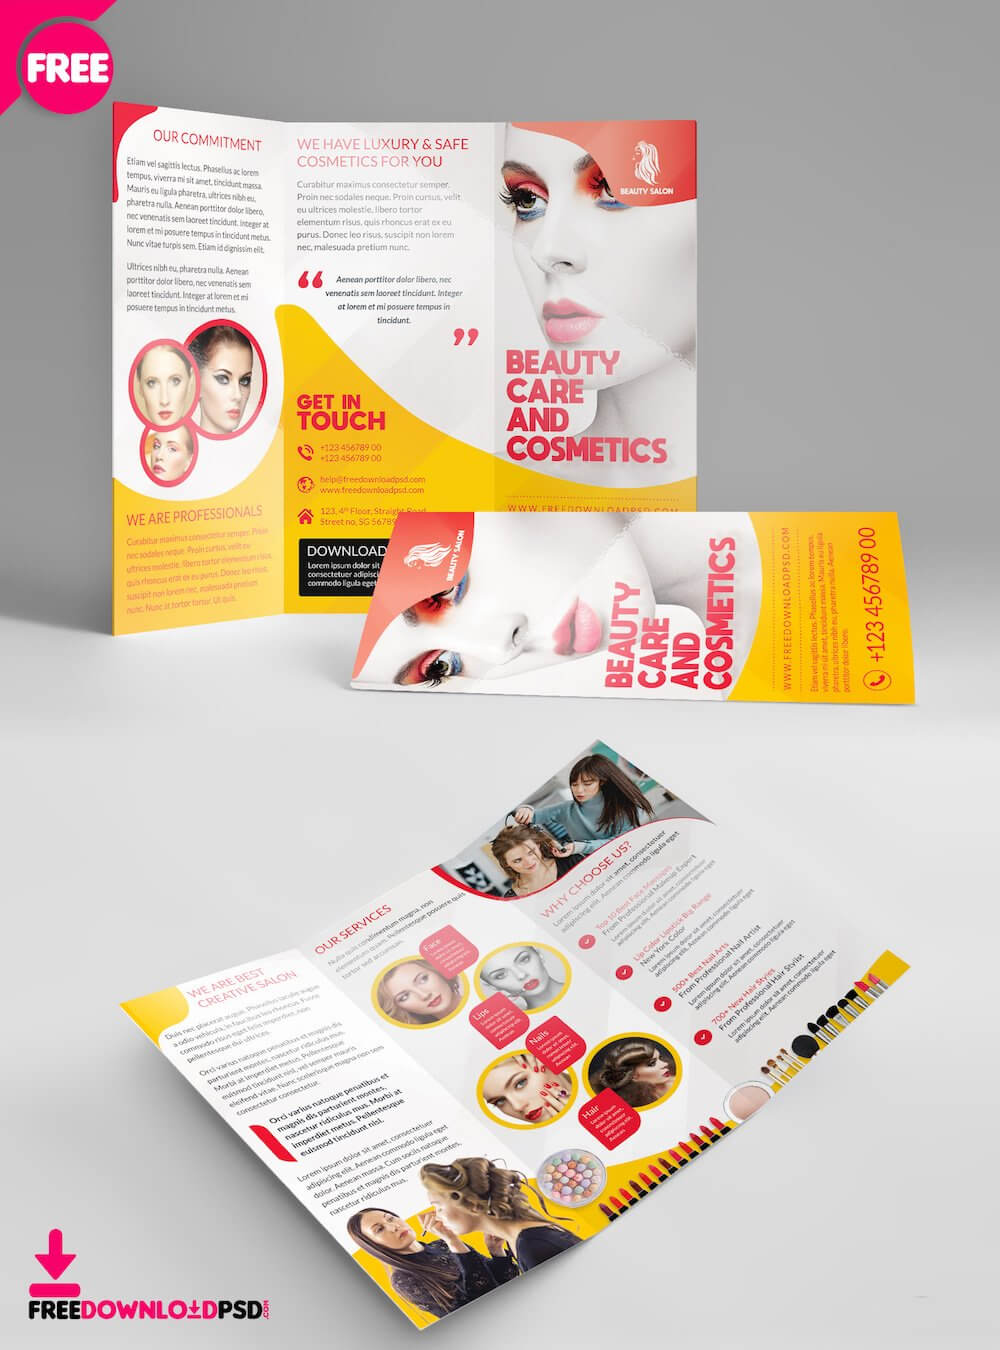 34 Best Free Brochure Mockups & Psd Templates 2019 - Colorlib pertaining to Single Page Brochure Templates Psd